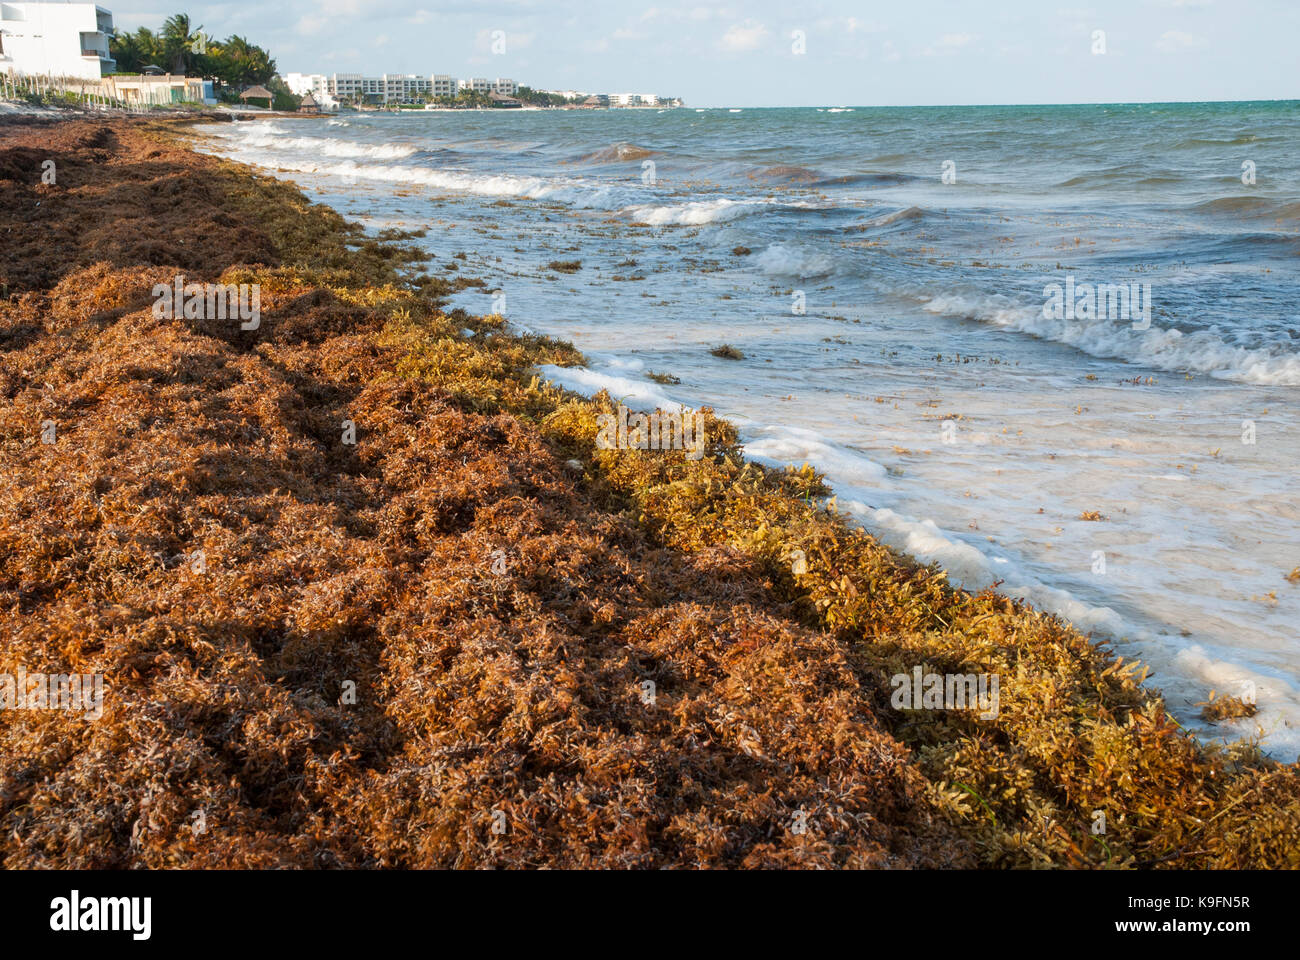 Washed up Sargassum seaweed covers a Caribbean beach near Cancun, Mexico. - Stock Image